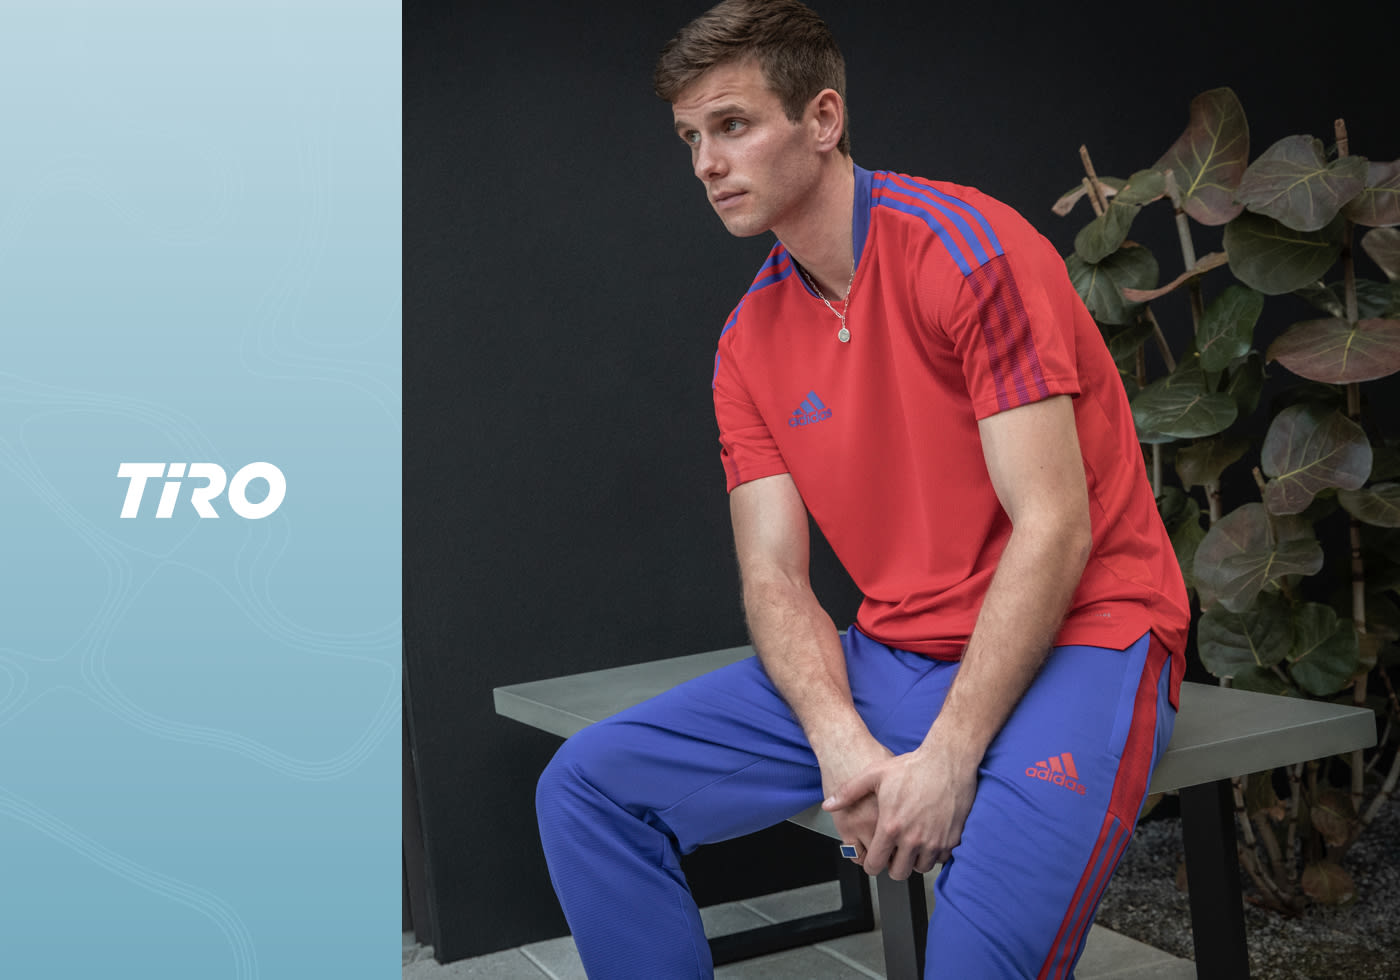 Image showing the key outfits for the Primeblue collection from adidas TIRO. Spring/Summer 21.